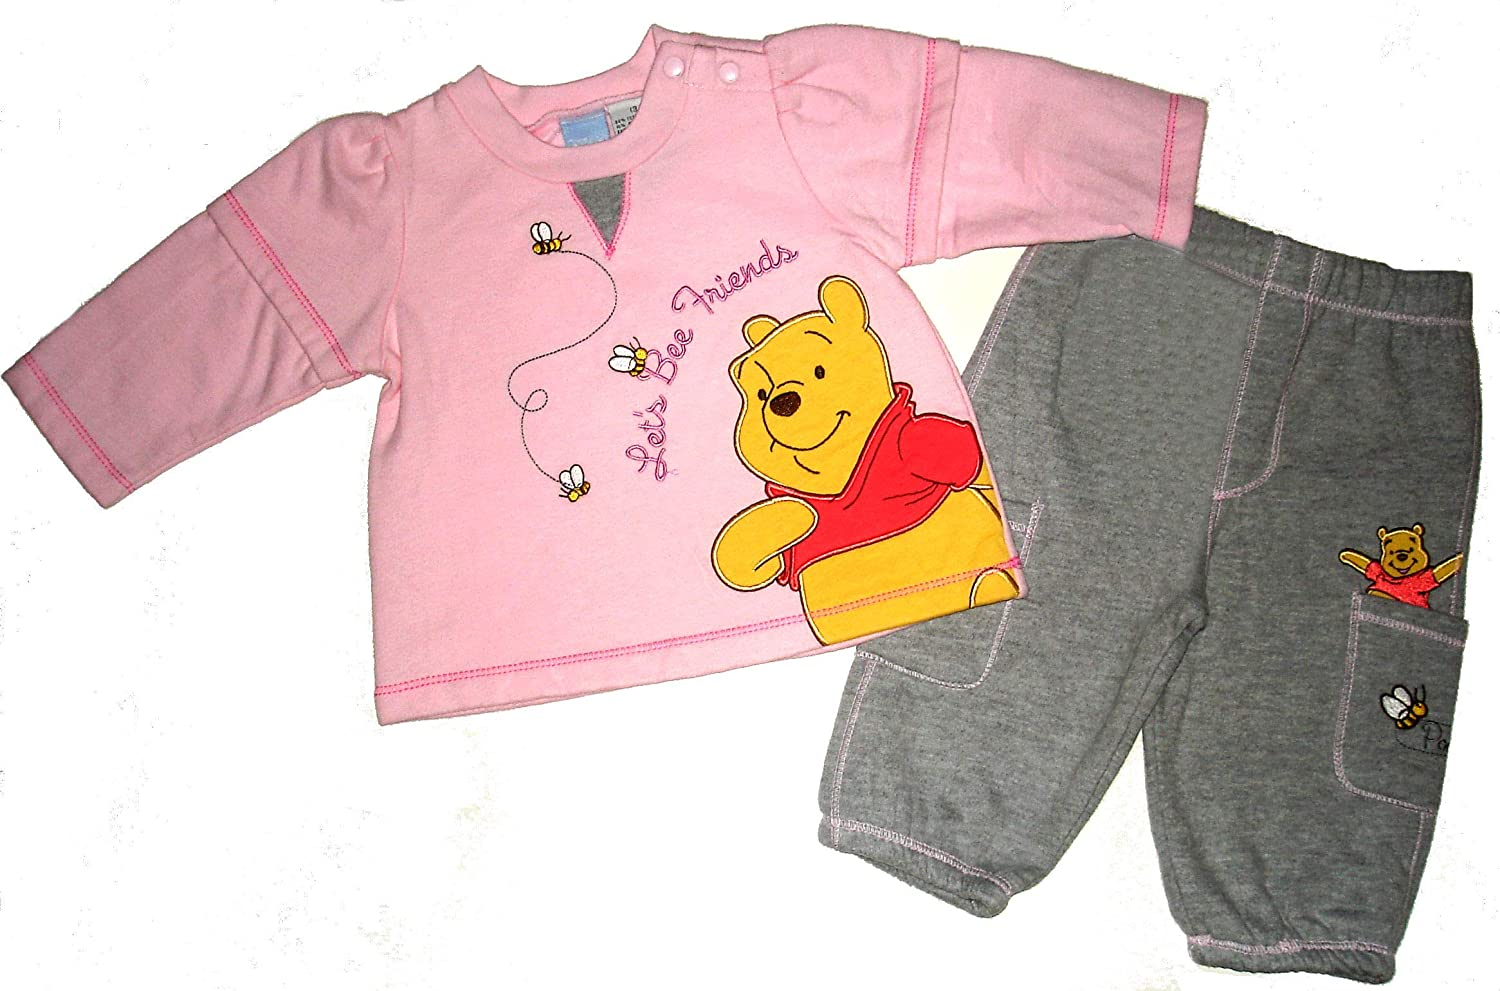 Disney Store Baby Winnie the Pooh Christmas Footed Pajamas Size 3-6 months